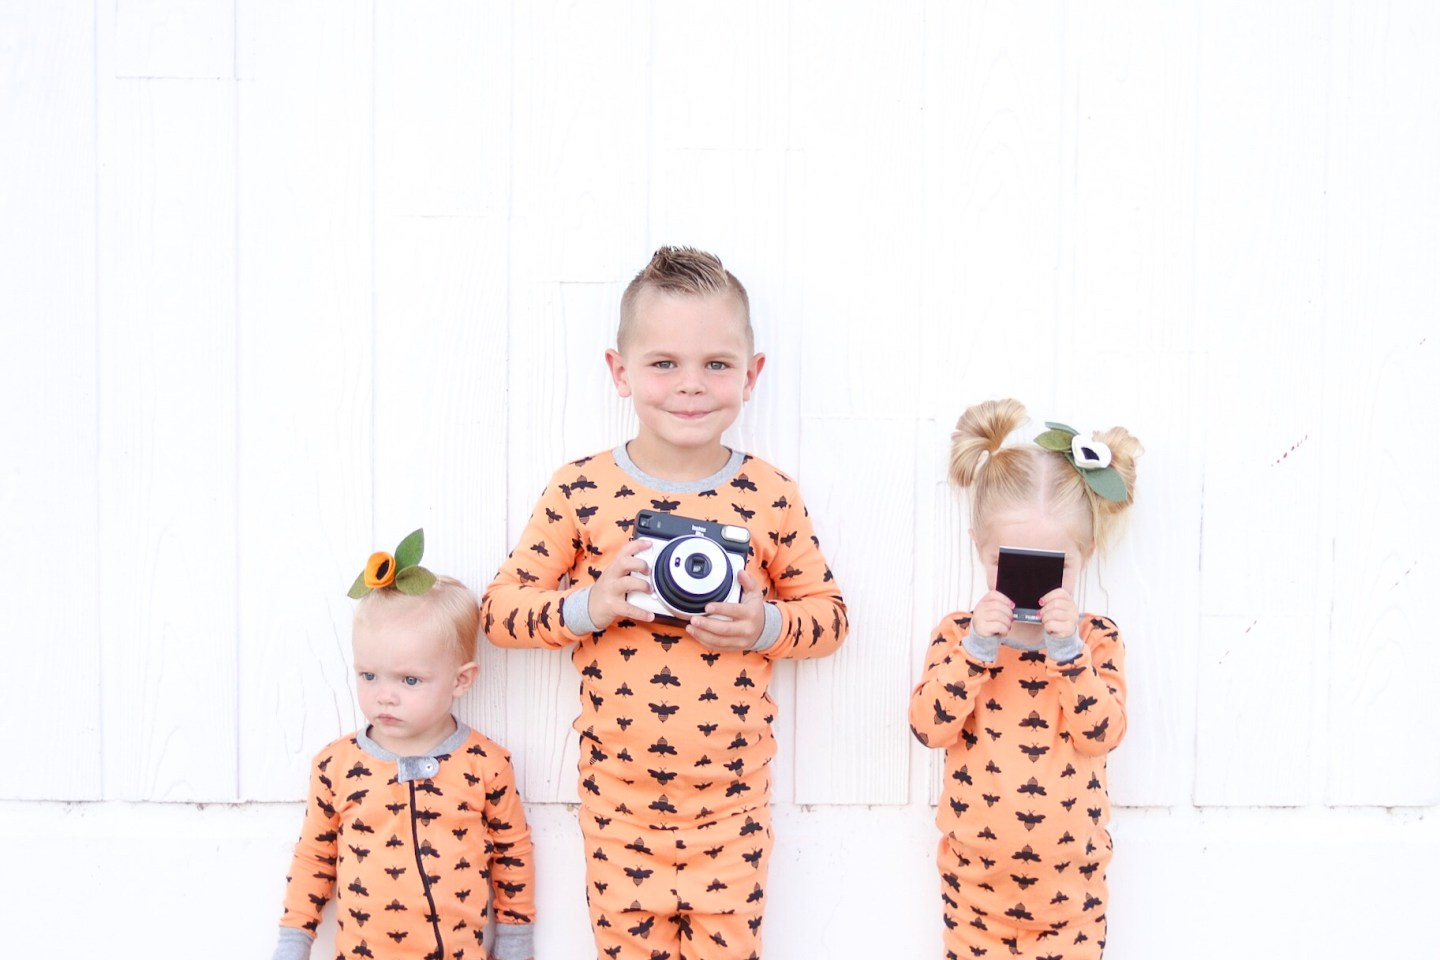 FUJIFILM Instax SQ6 Camera, kids in Burts bee's PJ's, fall clothes, halloween, halloween jammies